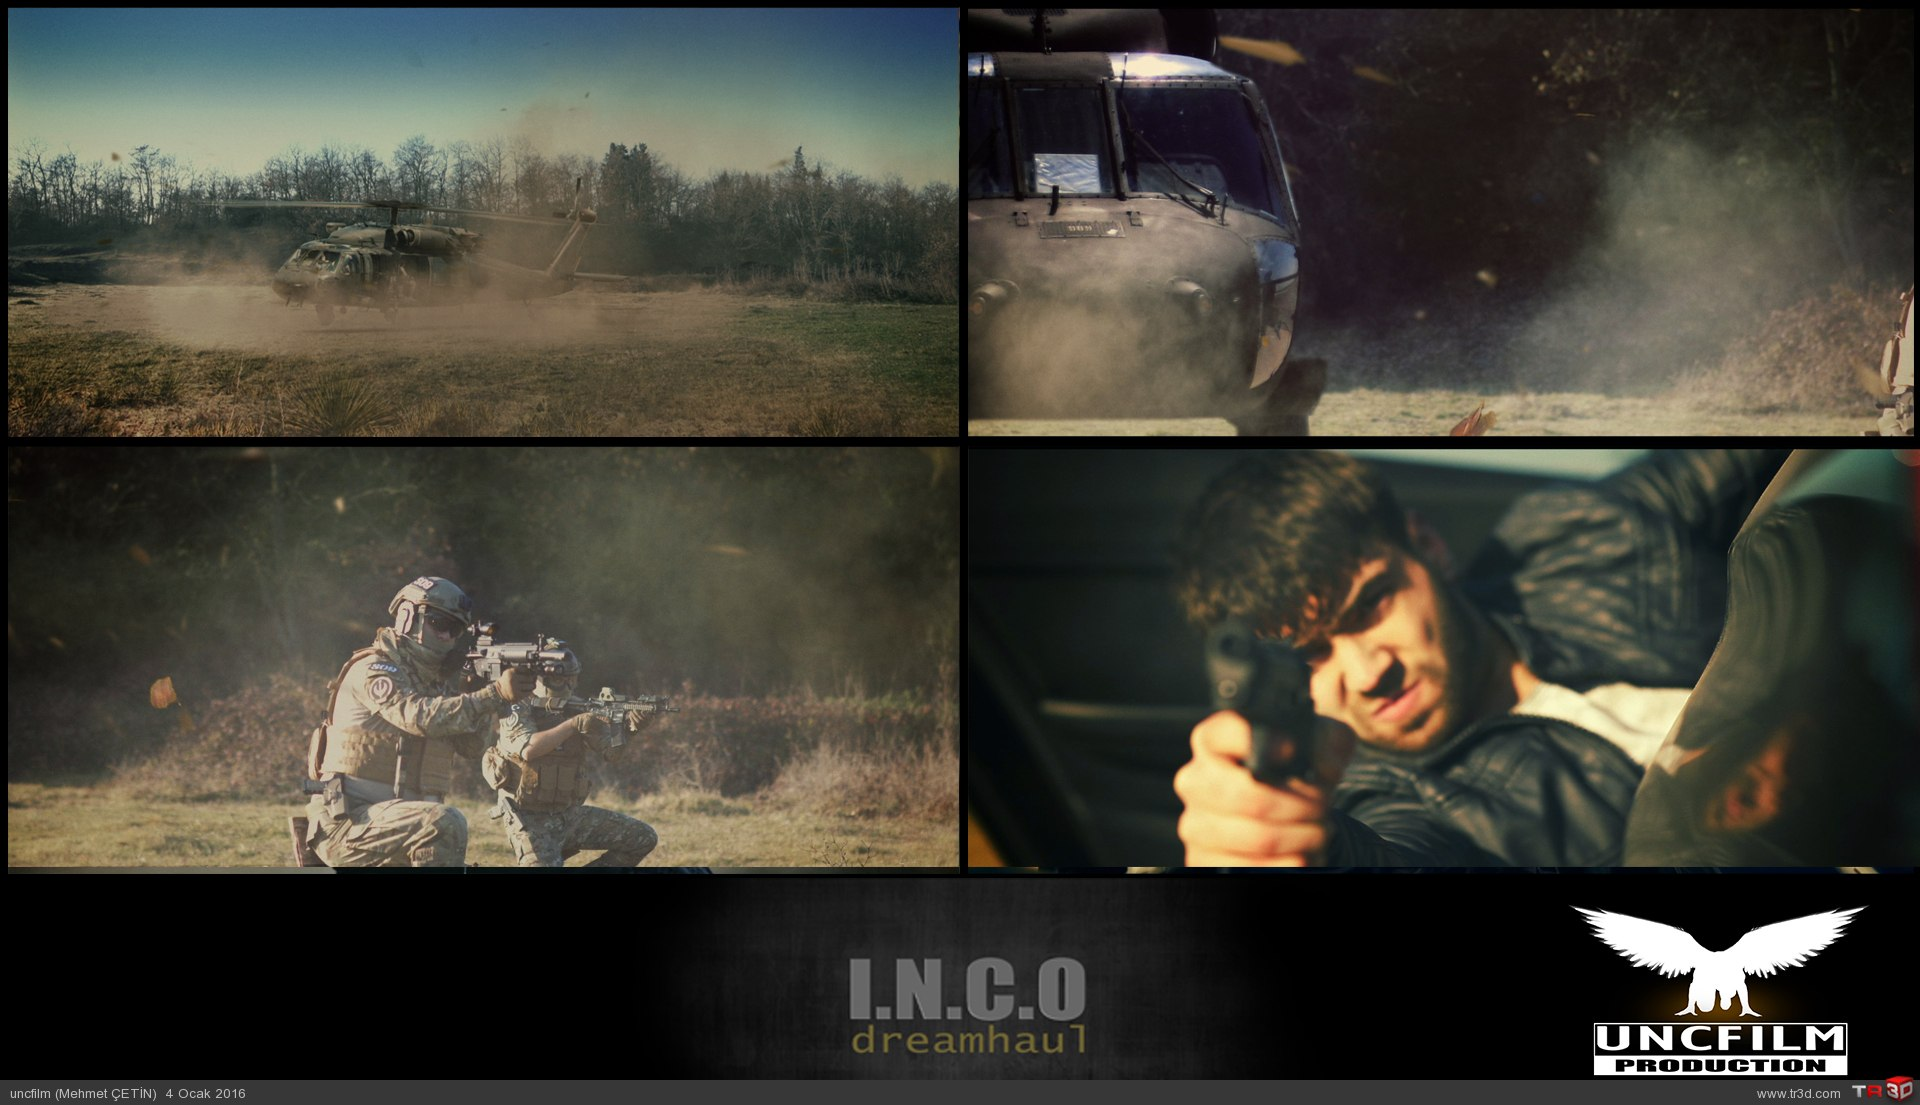 INCO Dreamhaul TV project 2